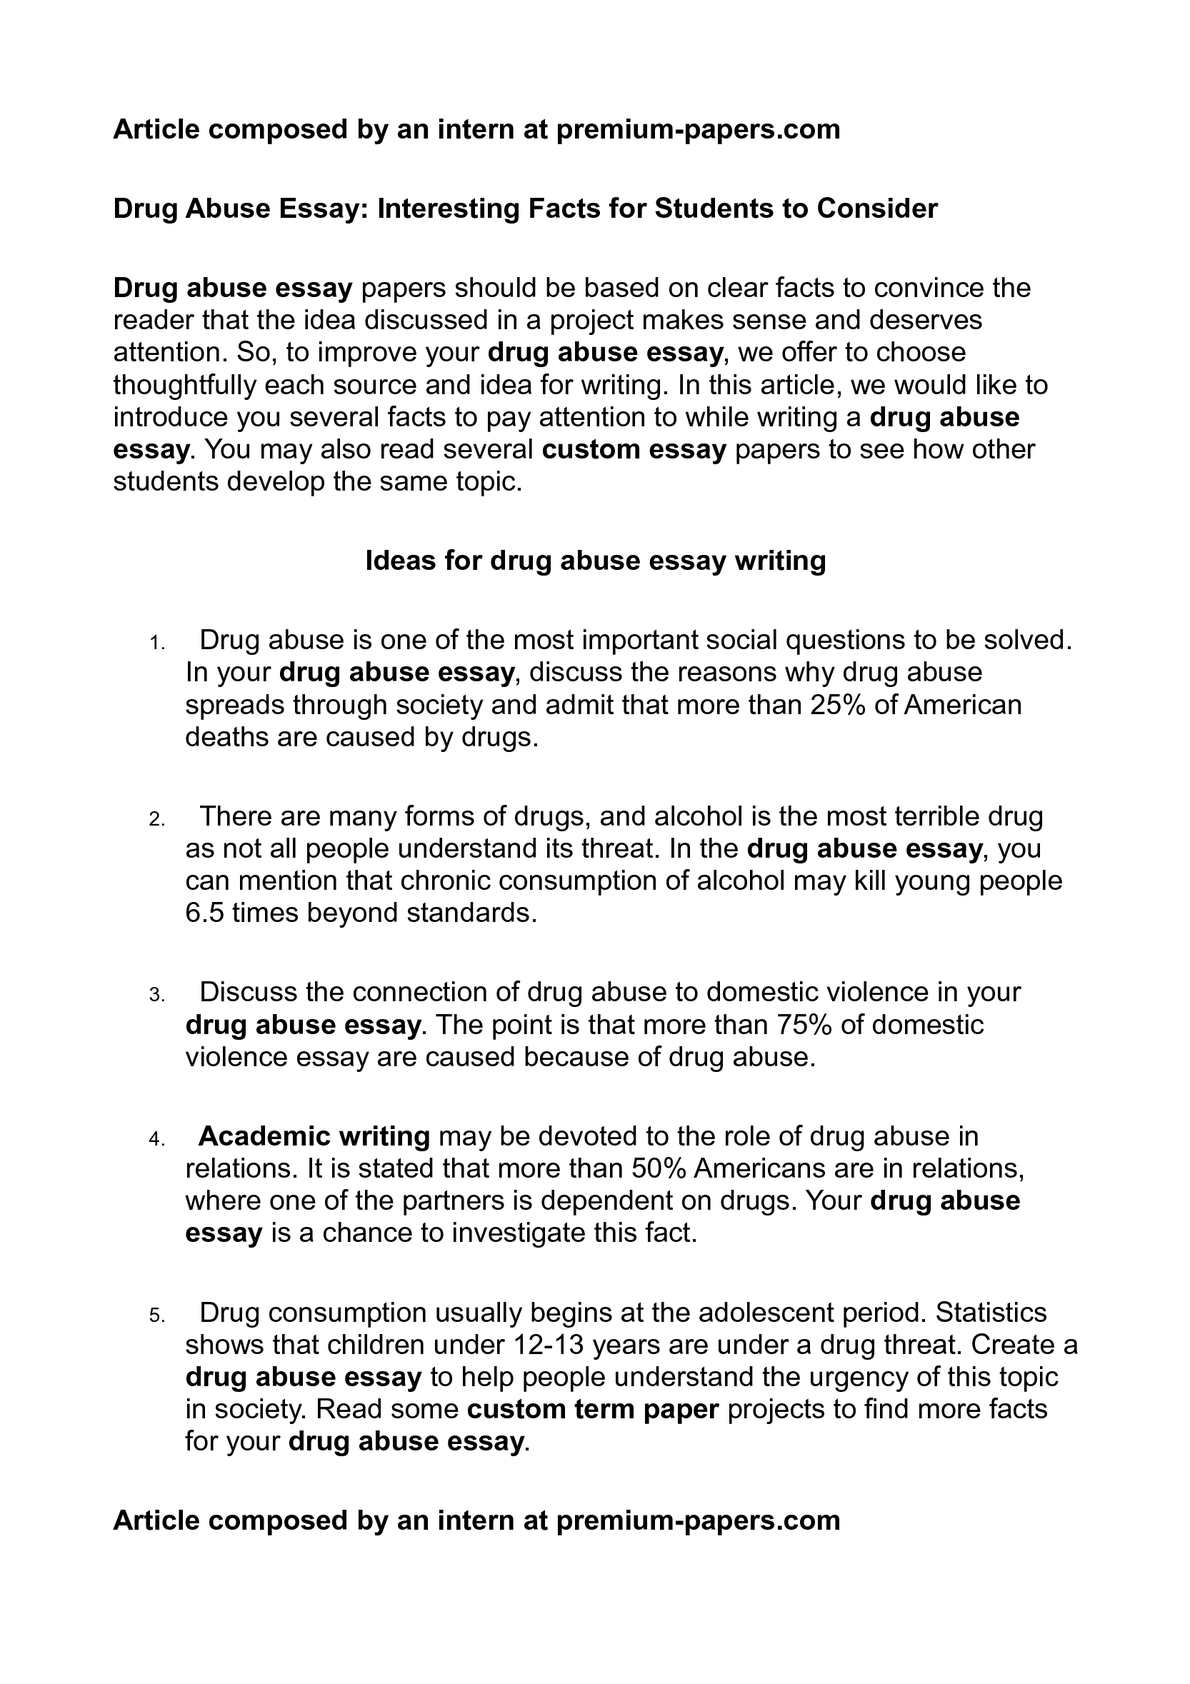 teenage drug abuse essay teen alcohol and drug abuse essays teen alcohol and drug abuse essaysalcohol and drug abuse among teenagers is a serious problem in the united states